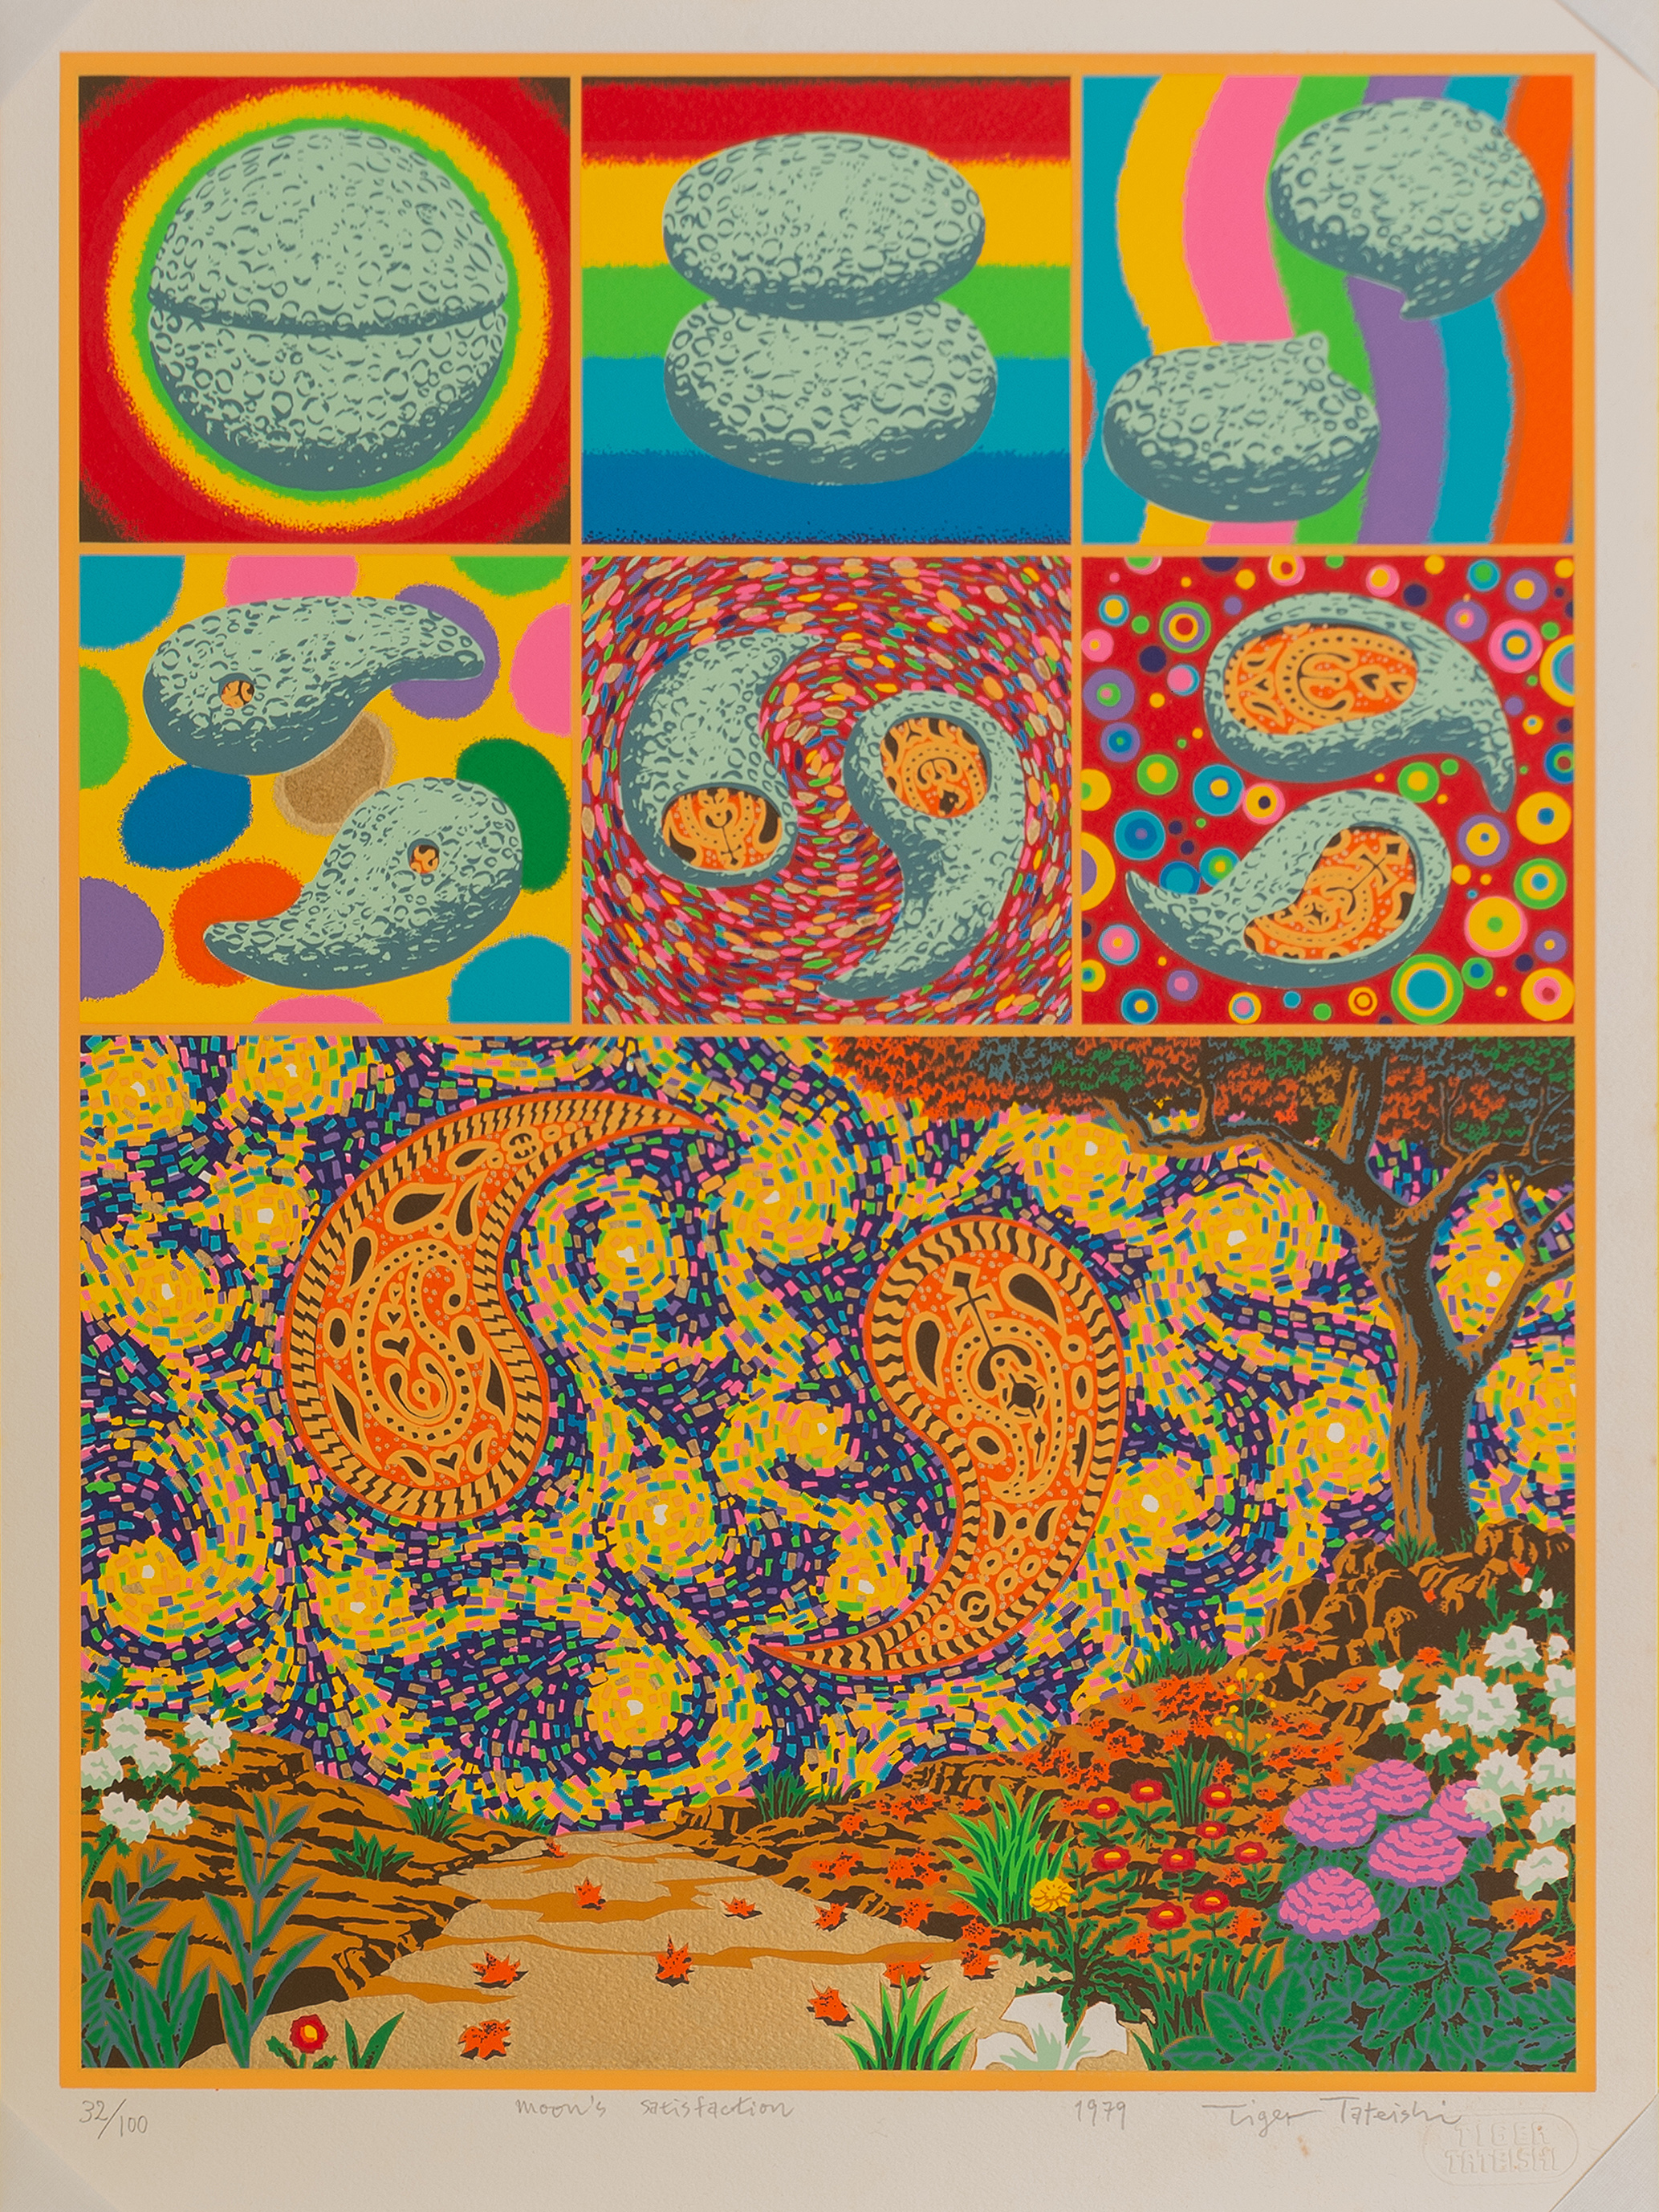 Moon's Satisfaction, 1979